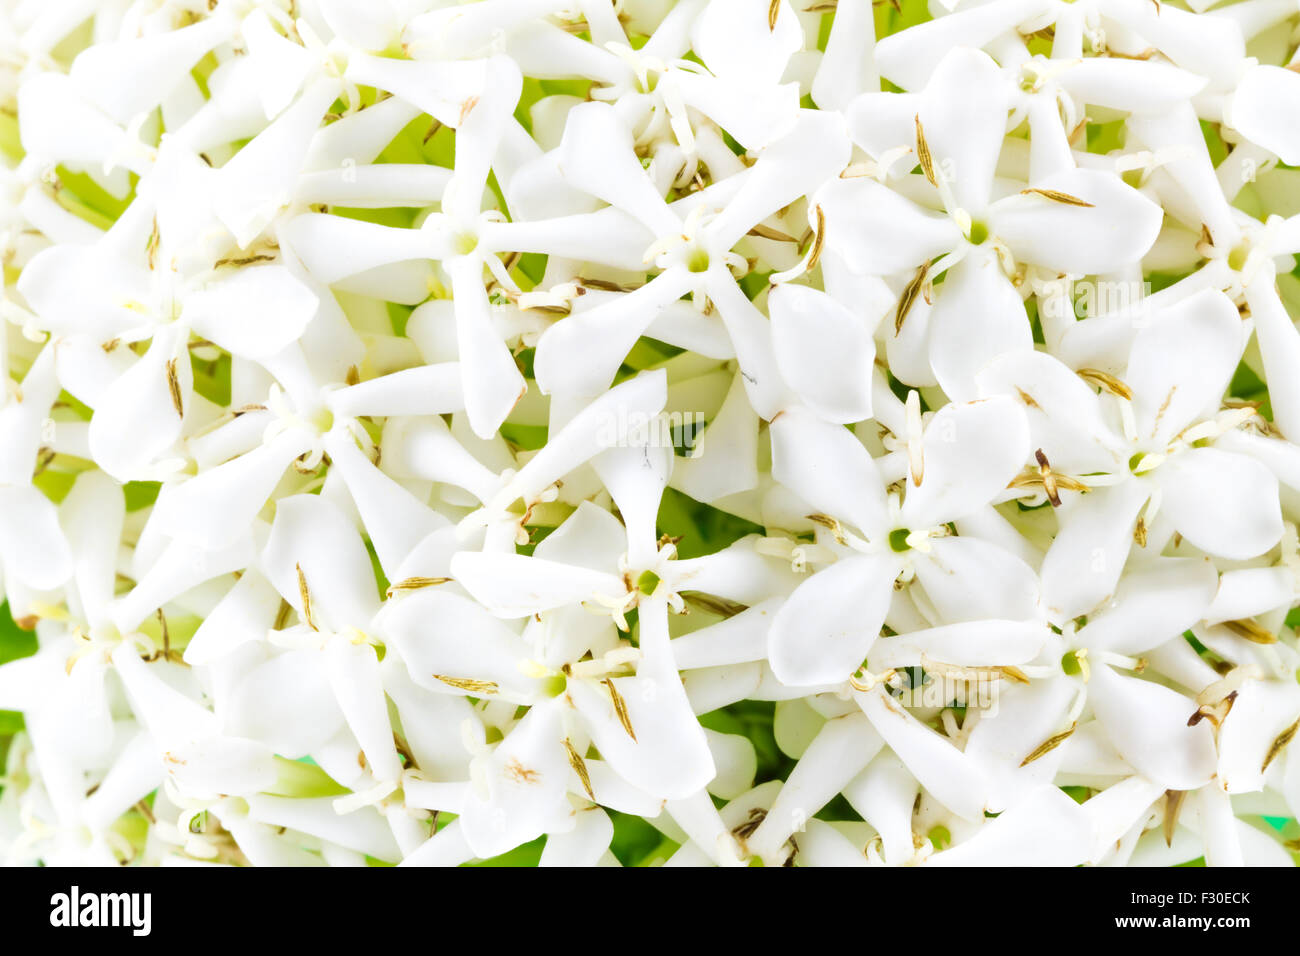 White Ixora Or West Indian Jasmine Flower Stock Photo 87907139 Alamy